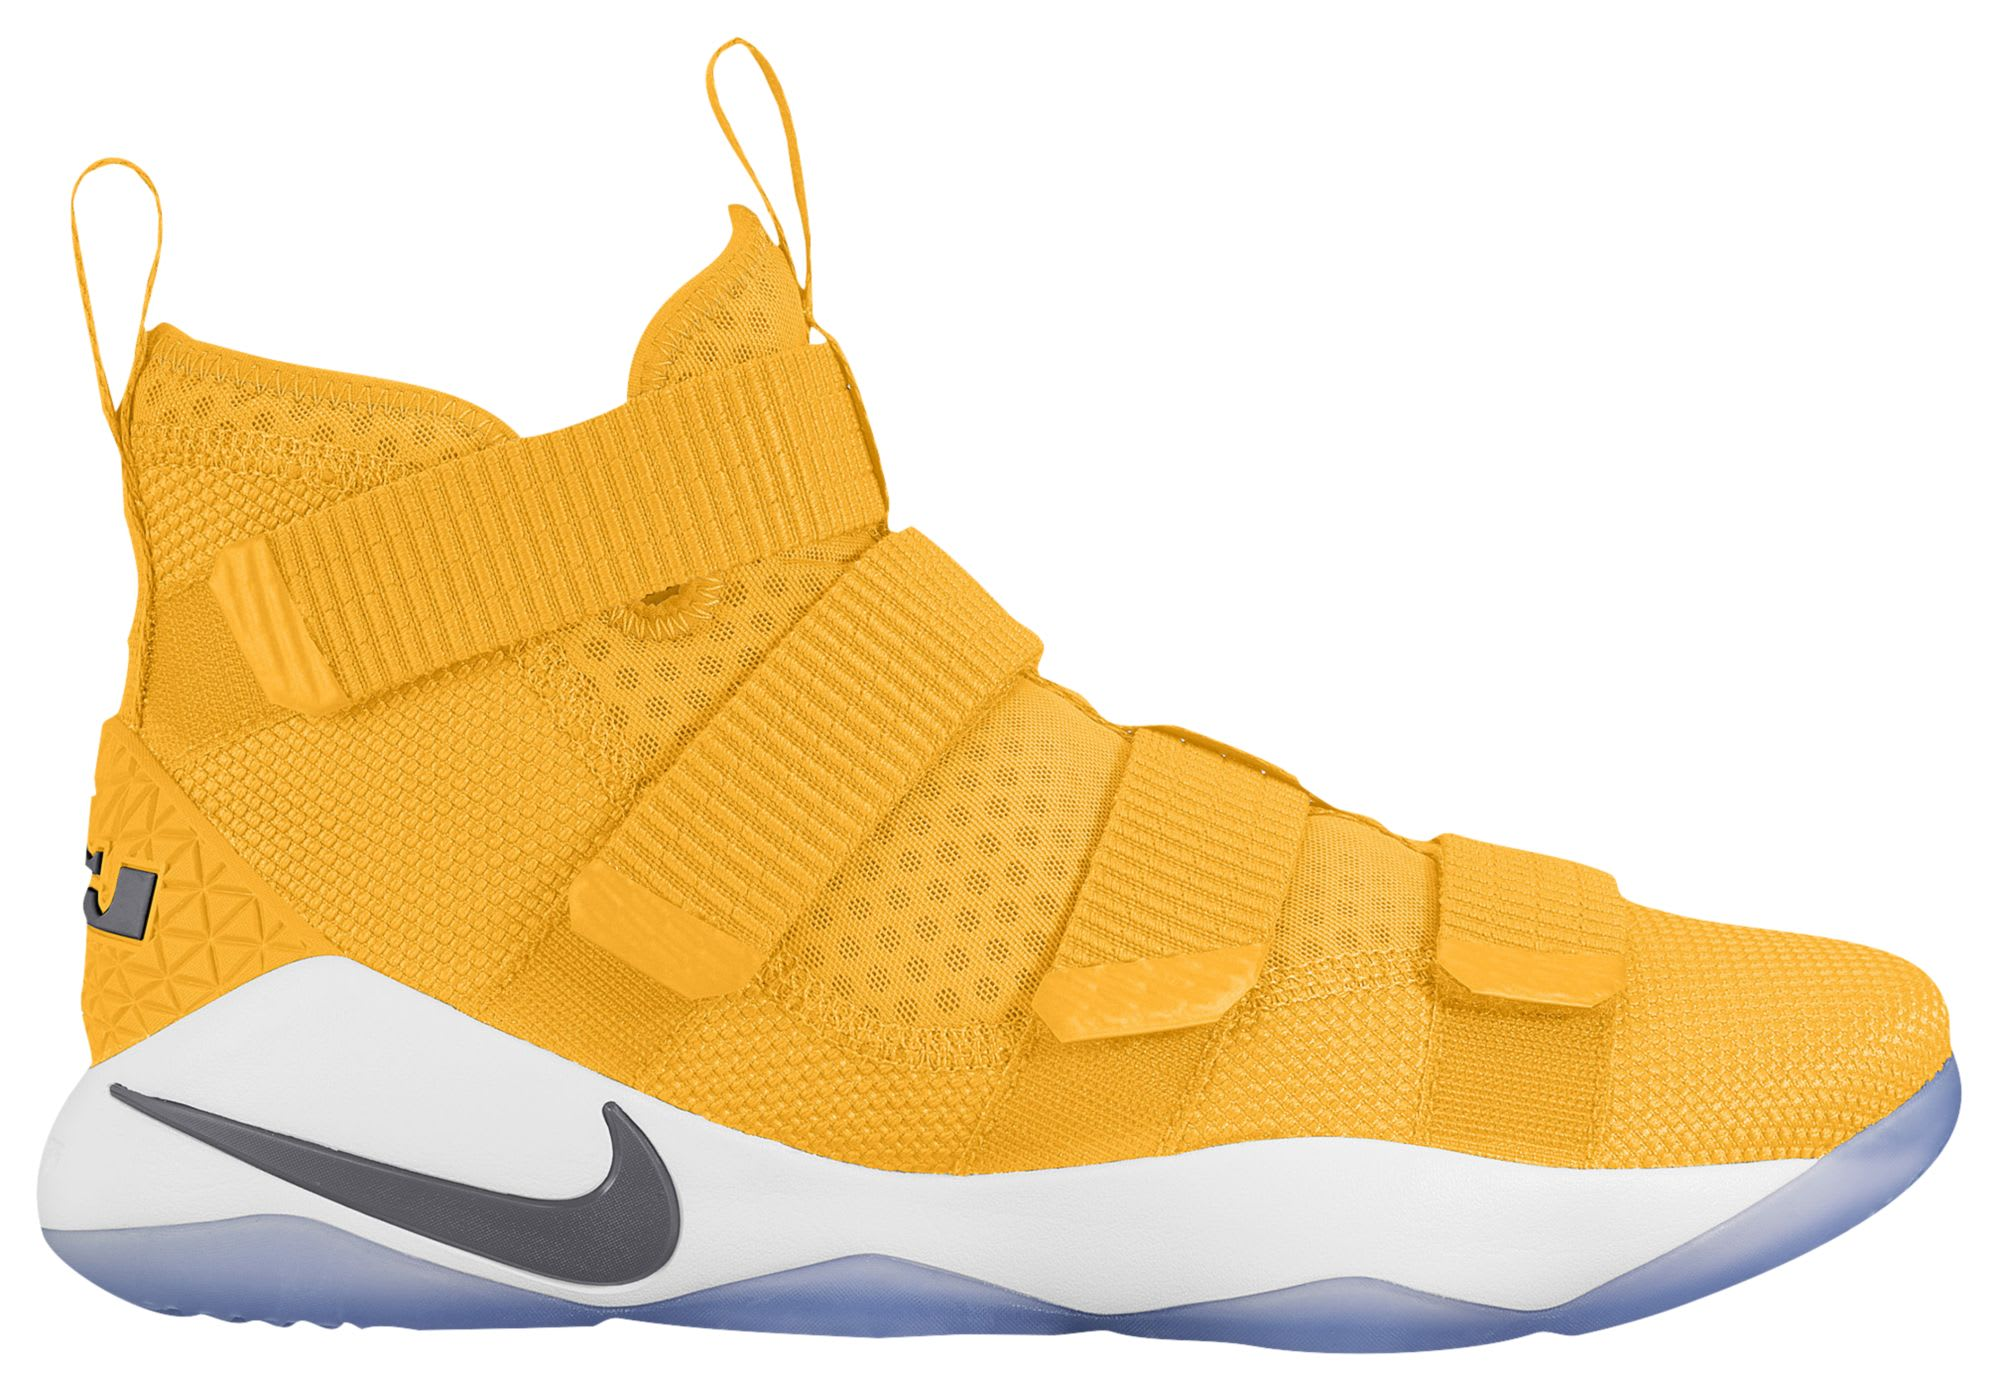 Nike LeBron Soldier 11 TB Yellow